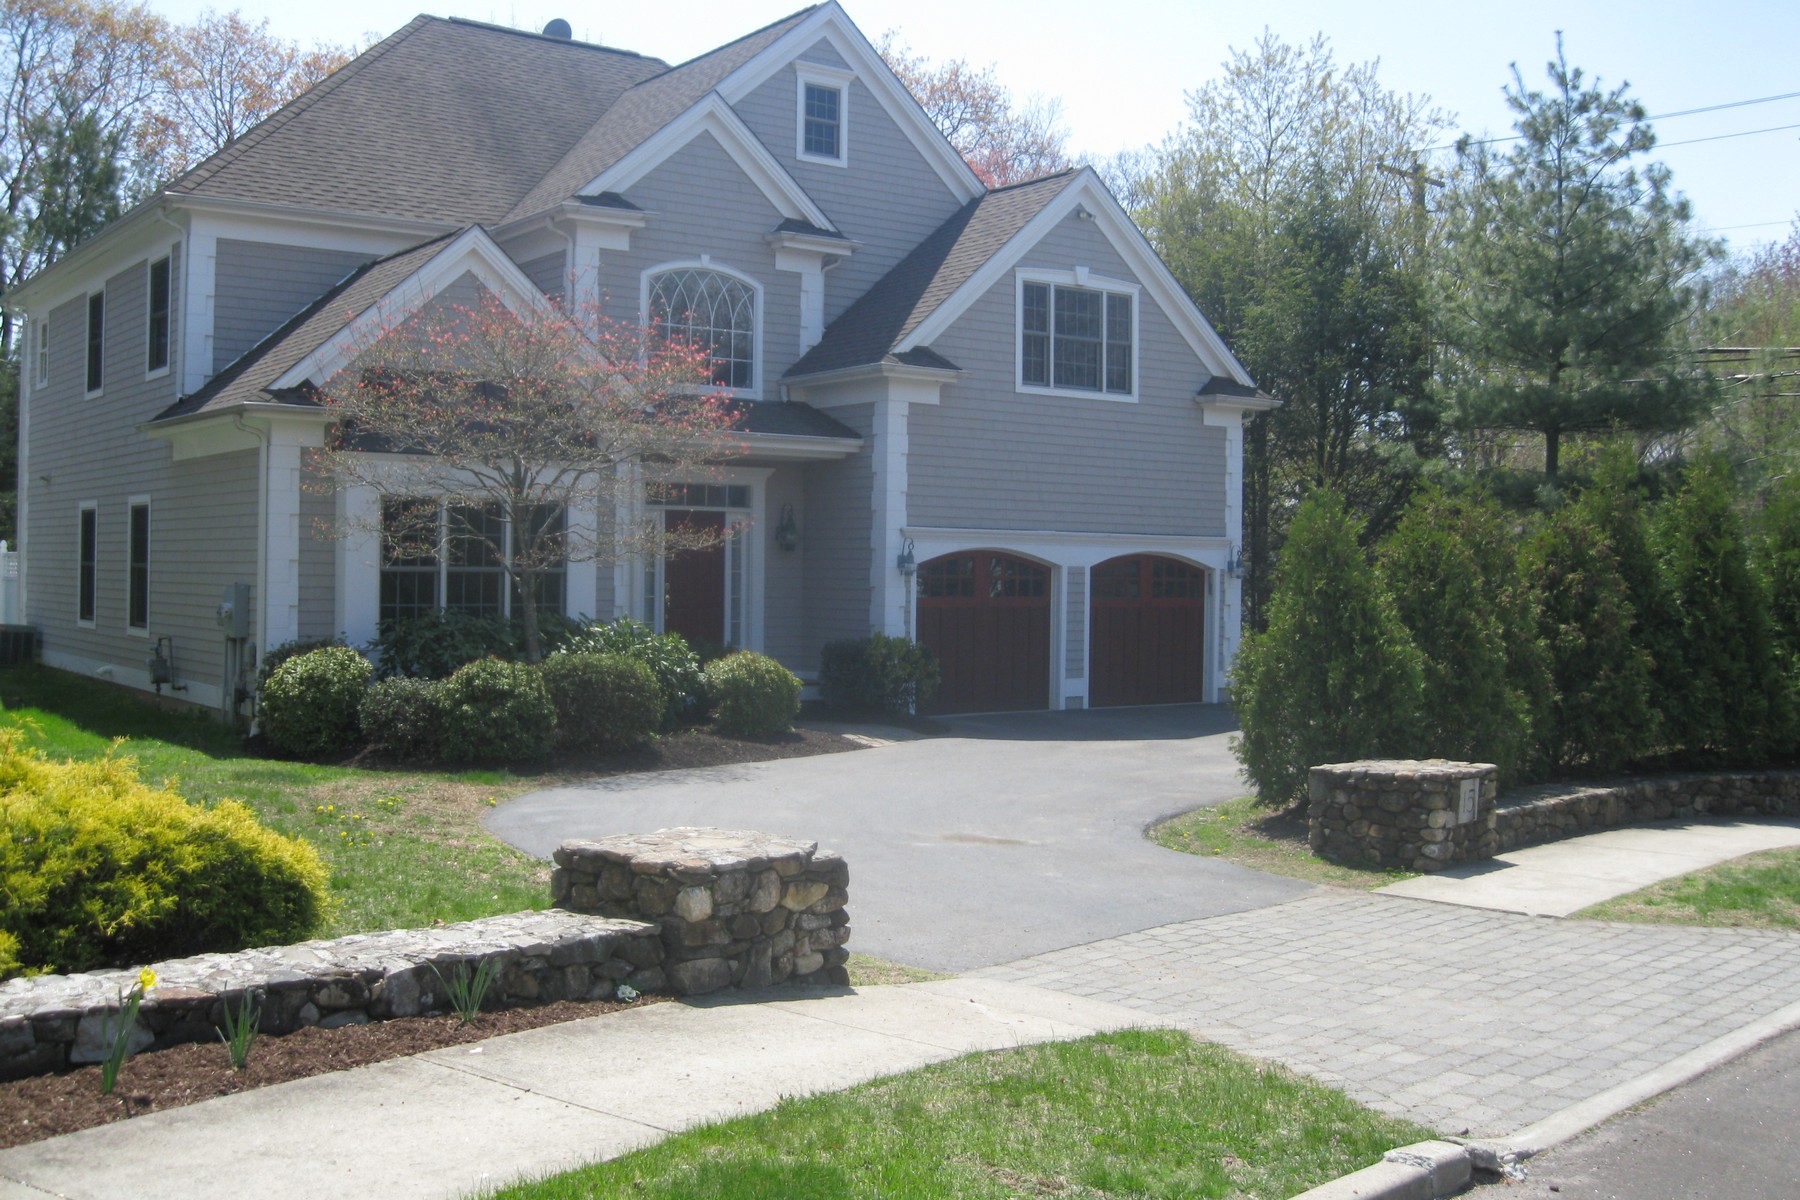 Single Family Home for Sale at Classic Newer Colonial on a Much Sought After Cul-de-Sac 15 Sconset Drive Fairfield, Connecticut 06824 United States